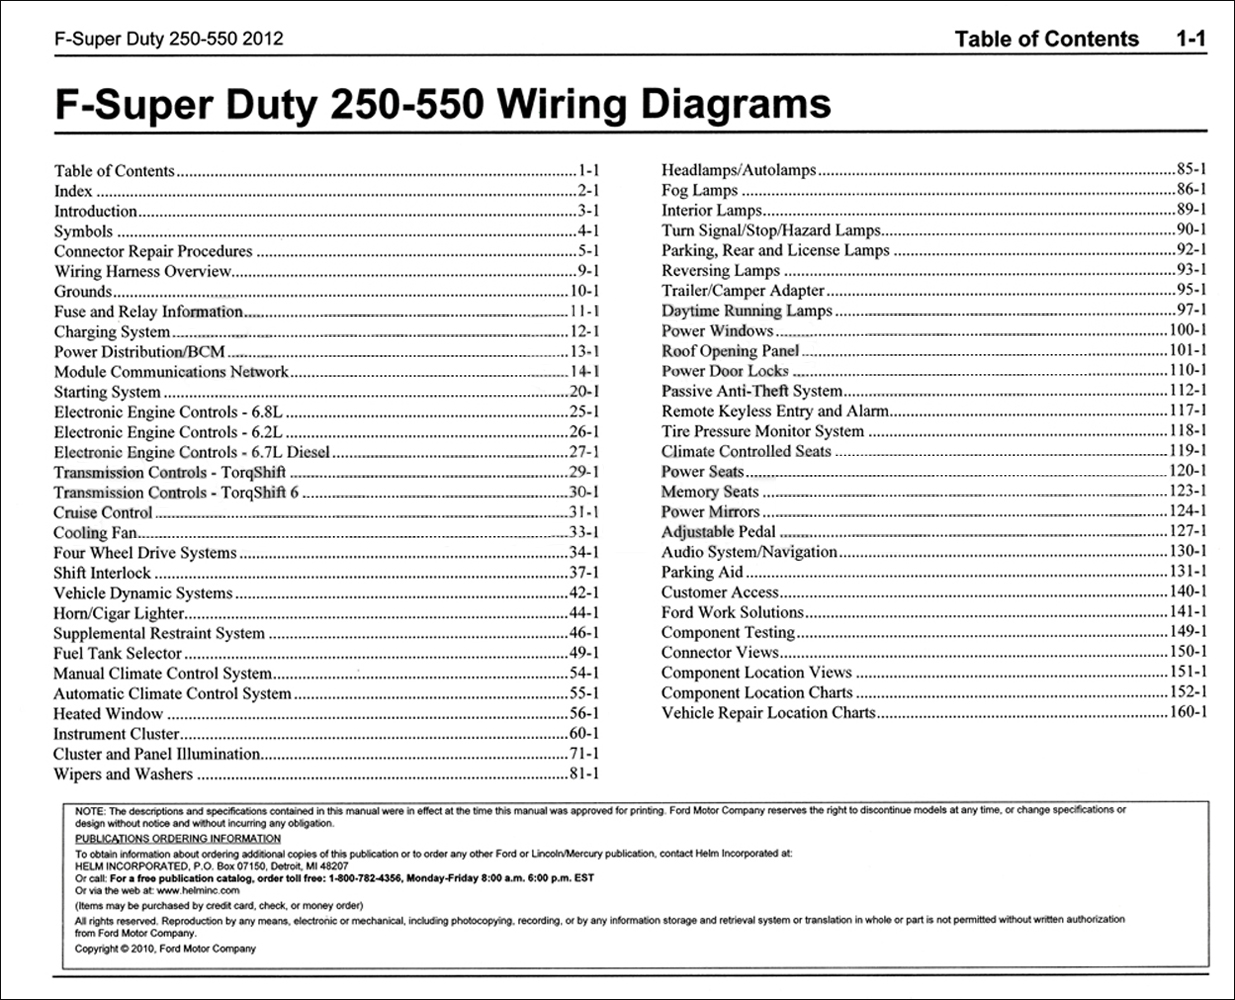 2012 Ford F 250 Thru 550 Super Duty Wiring Diagram Manual Original 2001 Diesel 1931 Model A